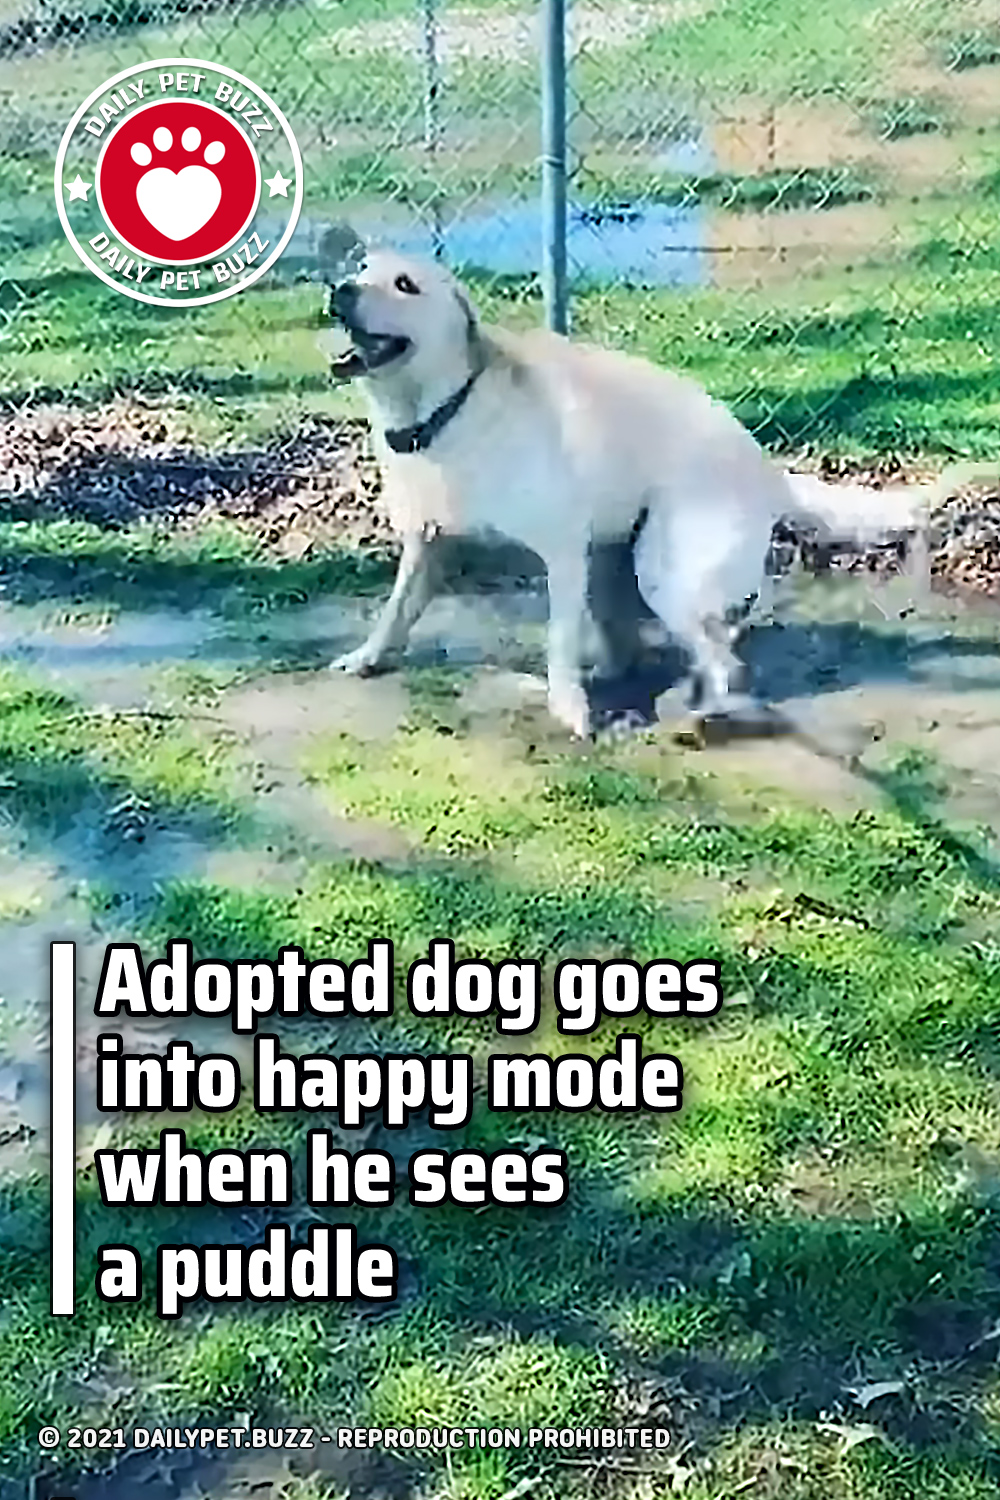 Adopted dog goes into happy mode when he sees a puddle